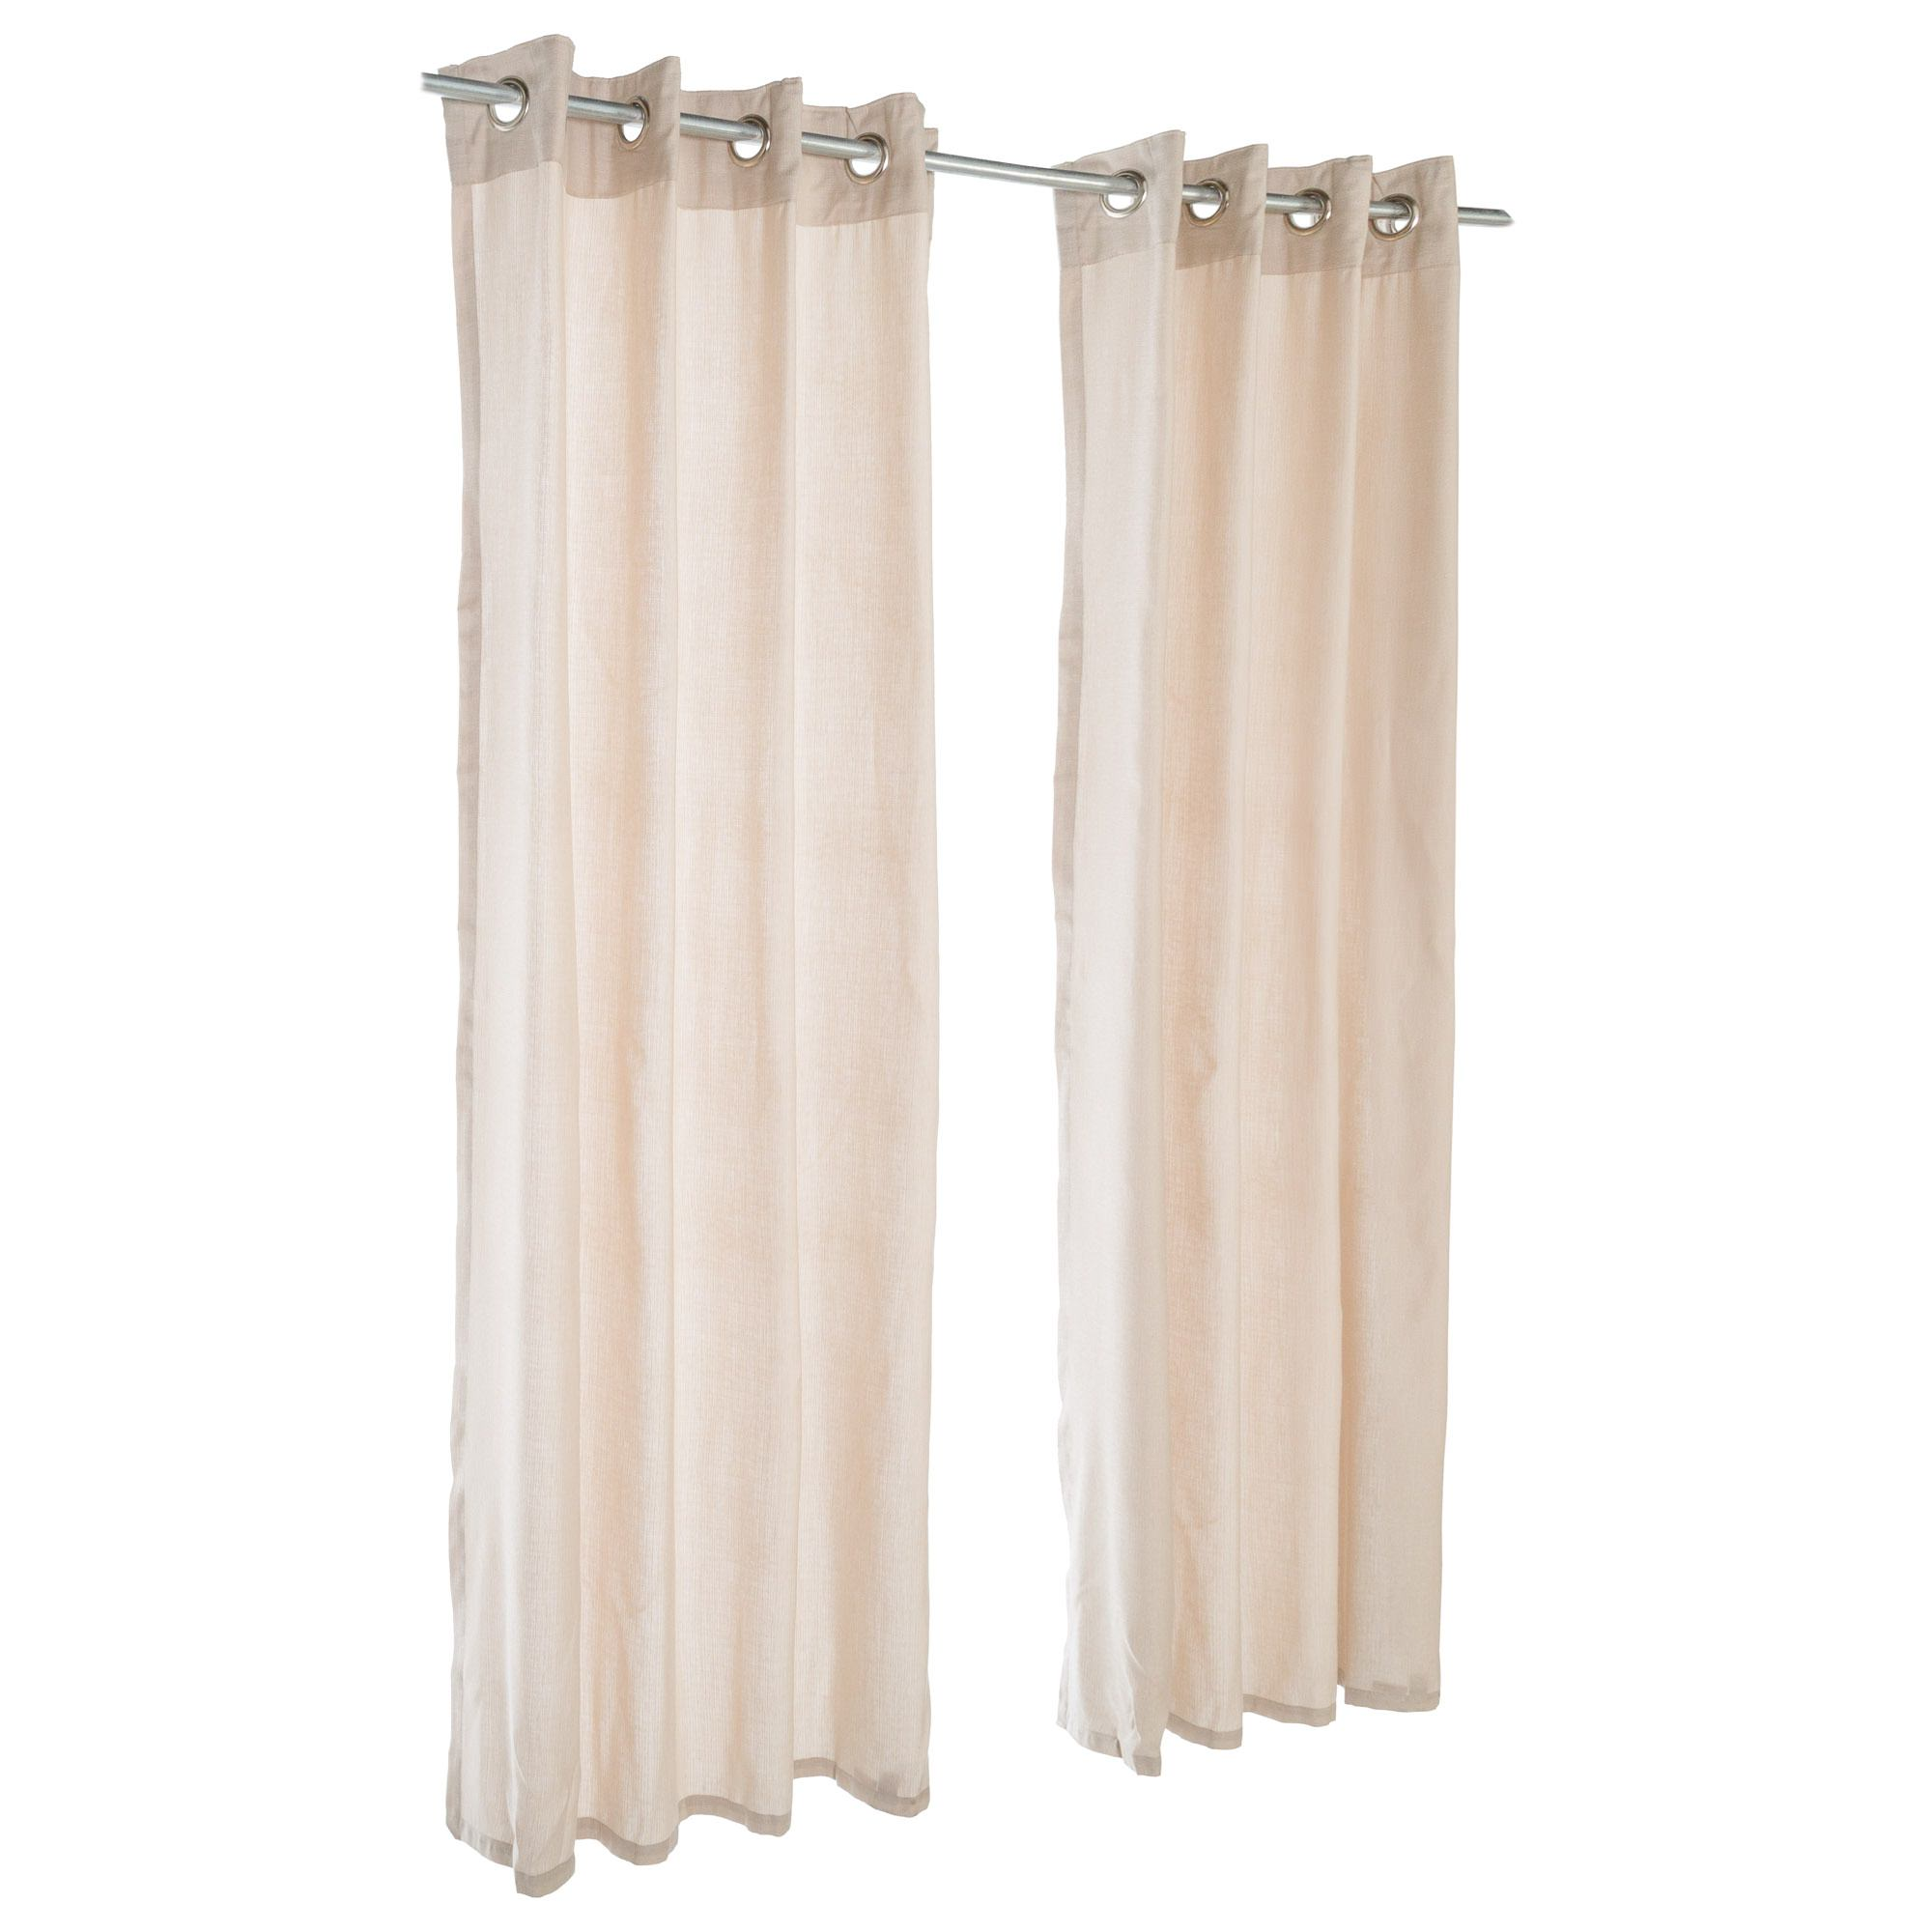 Sheer Wren Sunbrella Nickel Grommeted Outdoor Curtain by Essentials by DFO